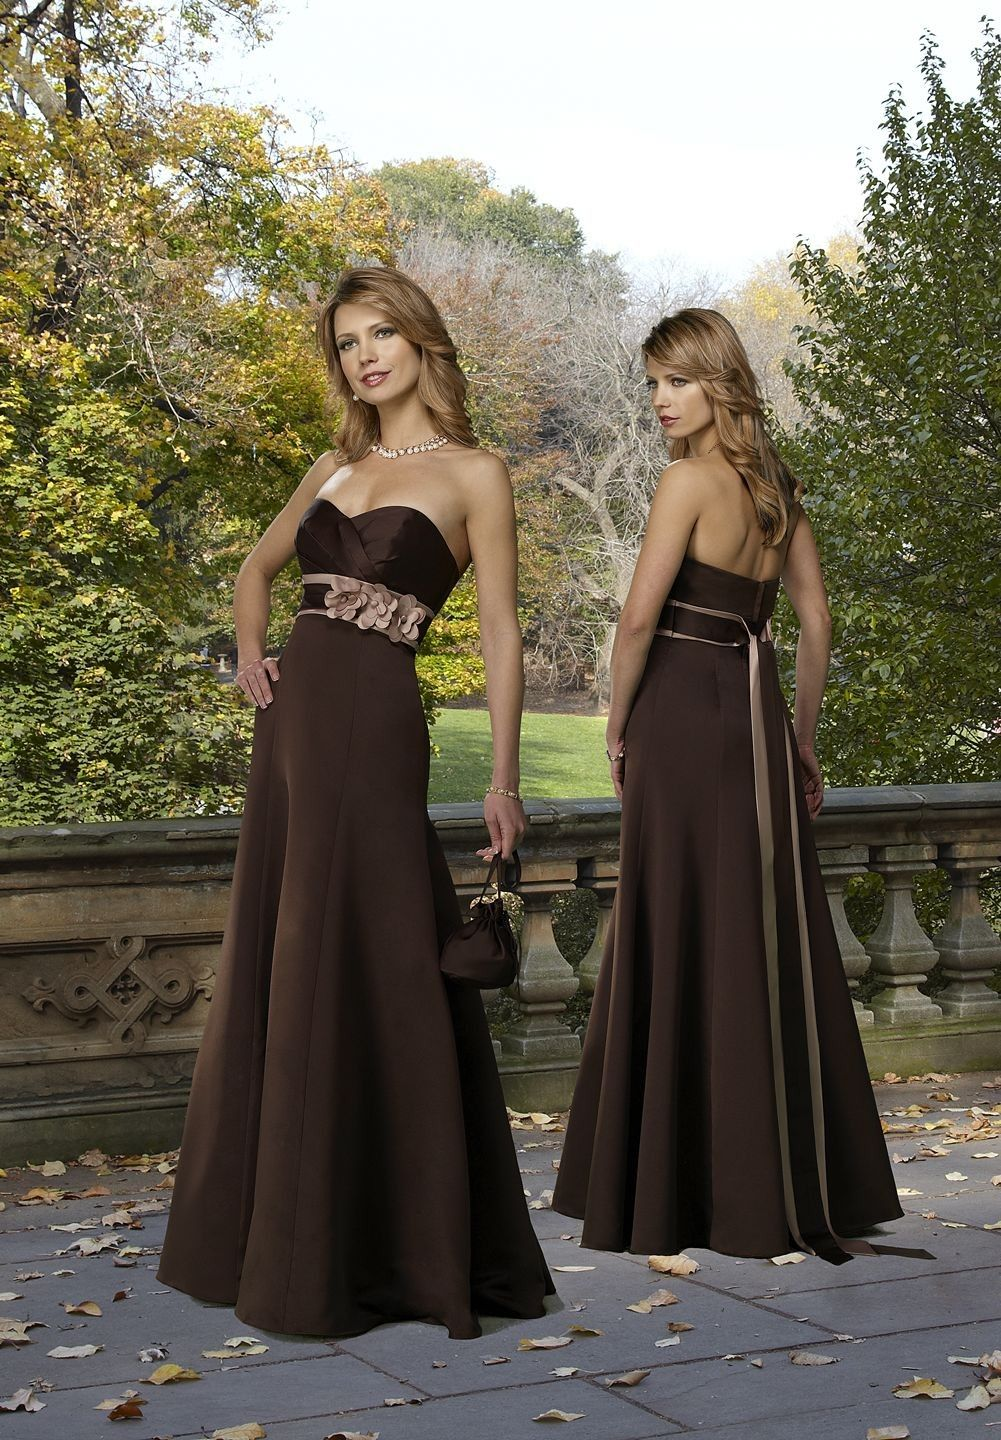 Pin by adele holifield on wedding ideas pinterest gowns and a line sweetheart belt sleeveless floor length satin brown bridesmaid dress prom dress evening dress ombrellifo Choice Image